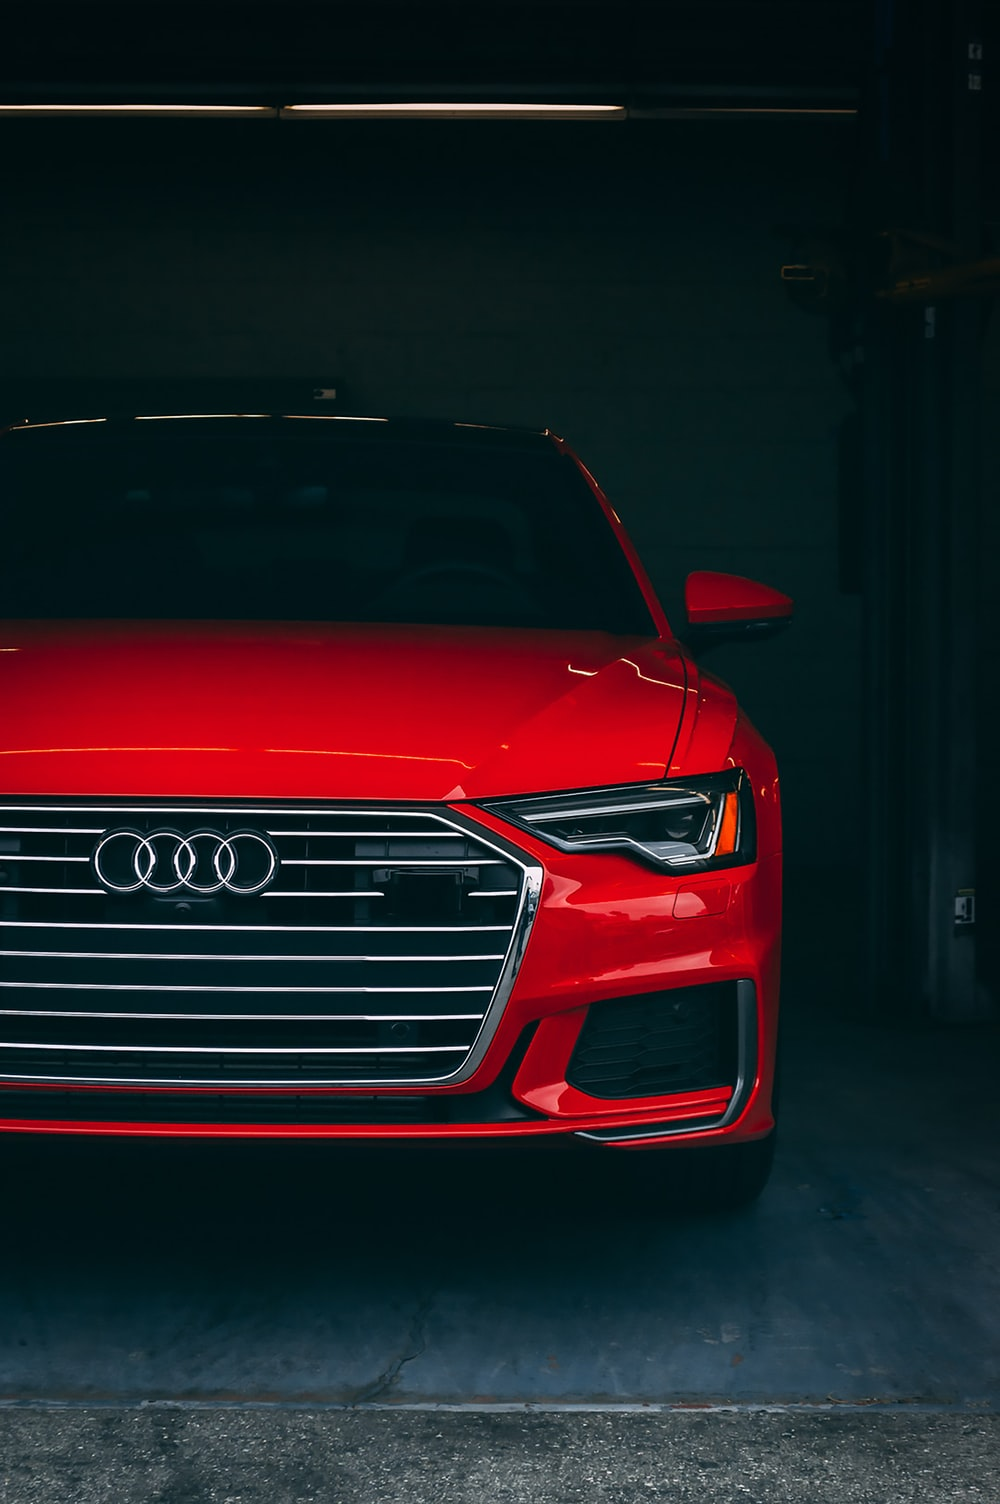 red Audi vehicle parked inside garage with light